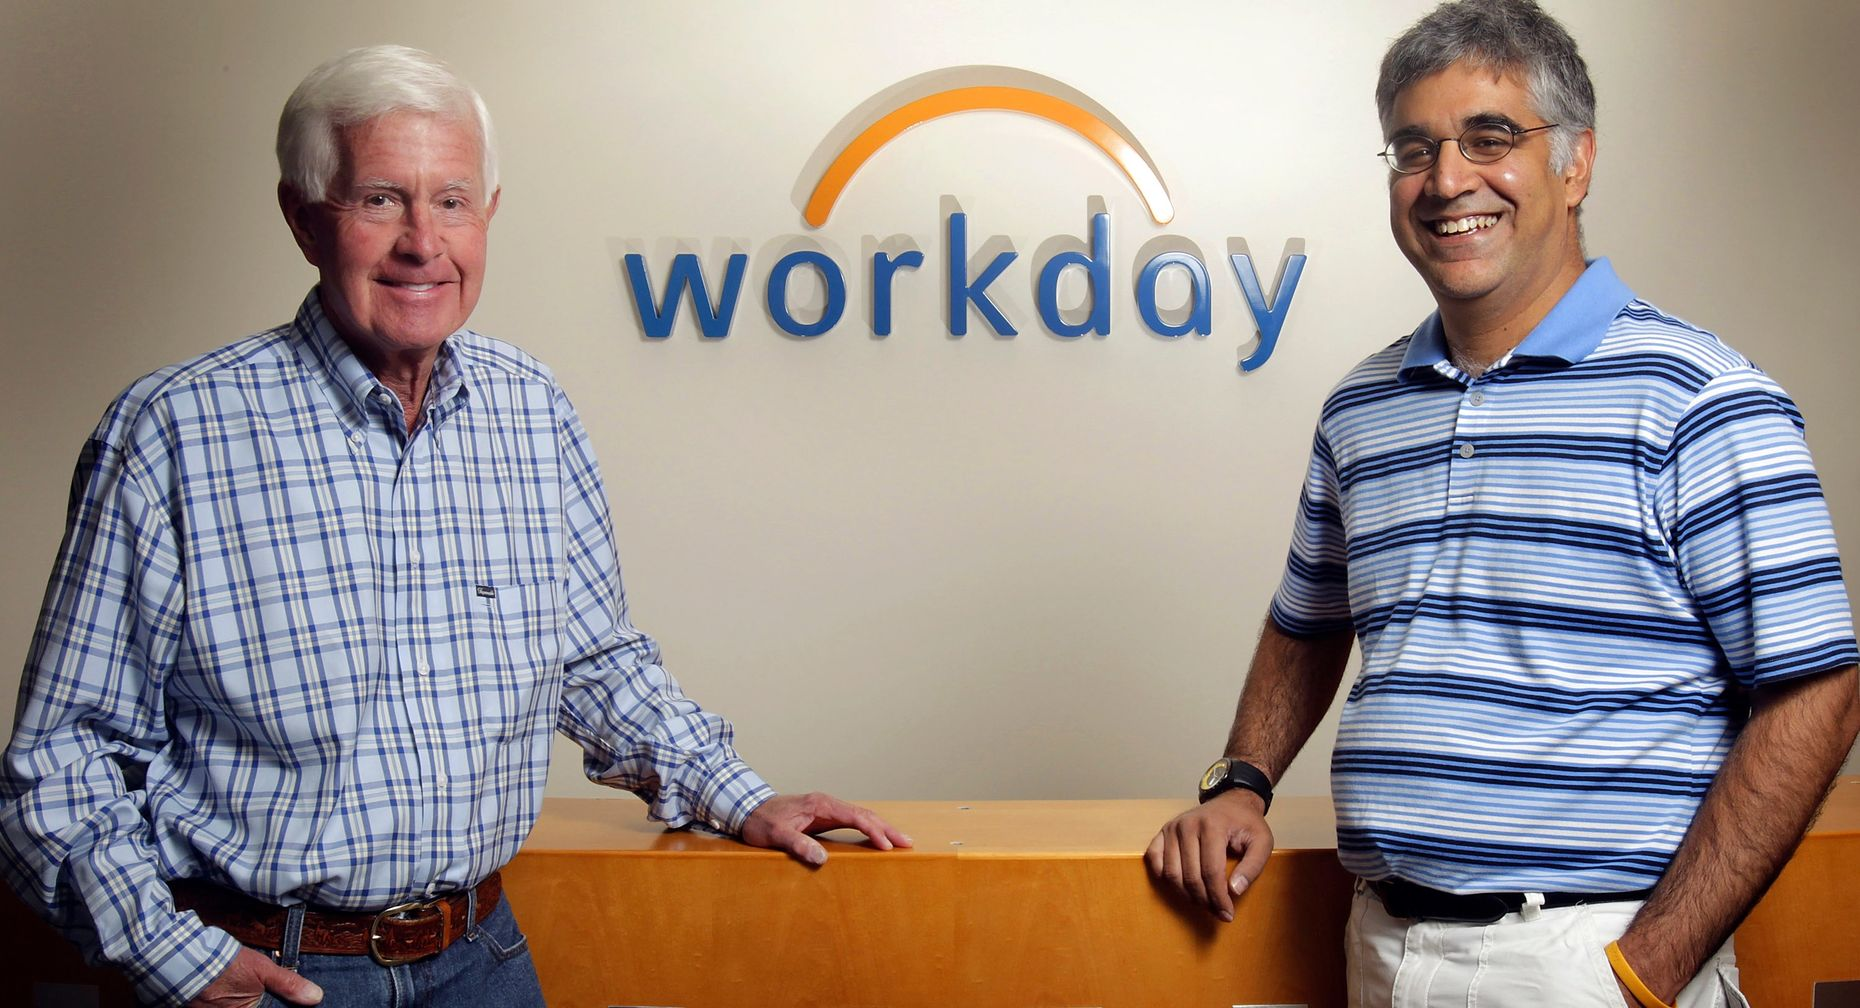 Workday co-founders David Duffield and Aneel Bhusri. Photo by Bloomberg.